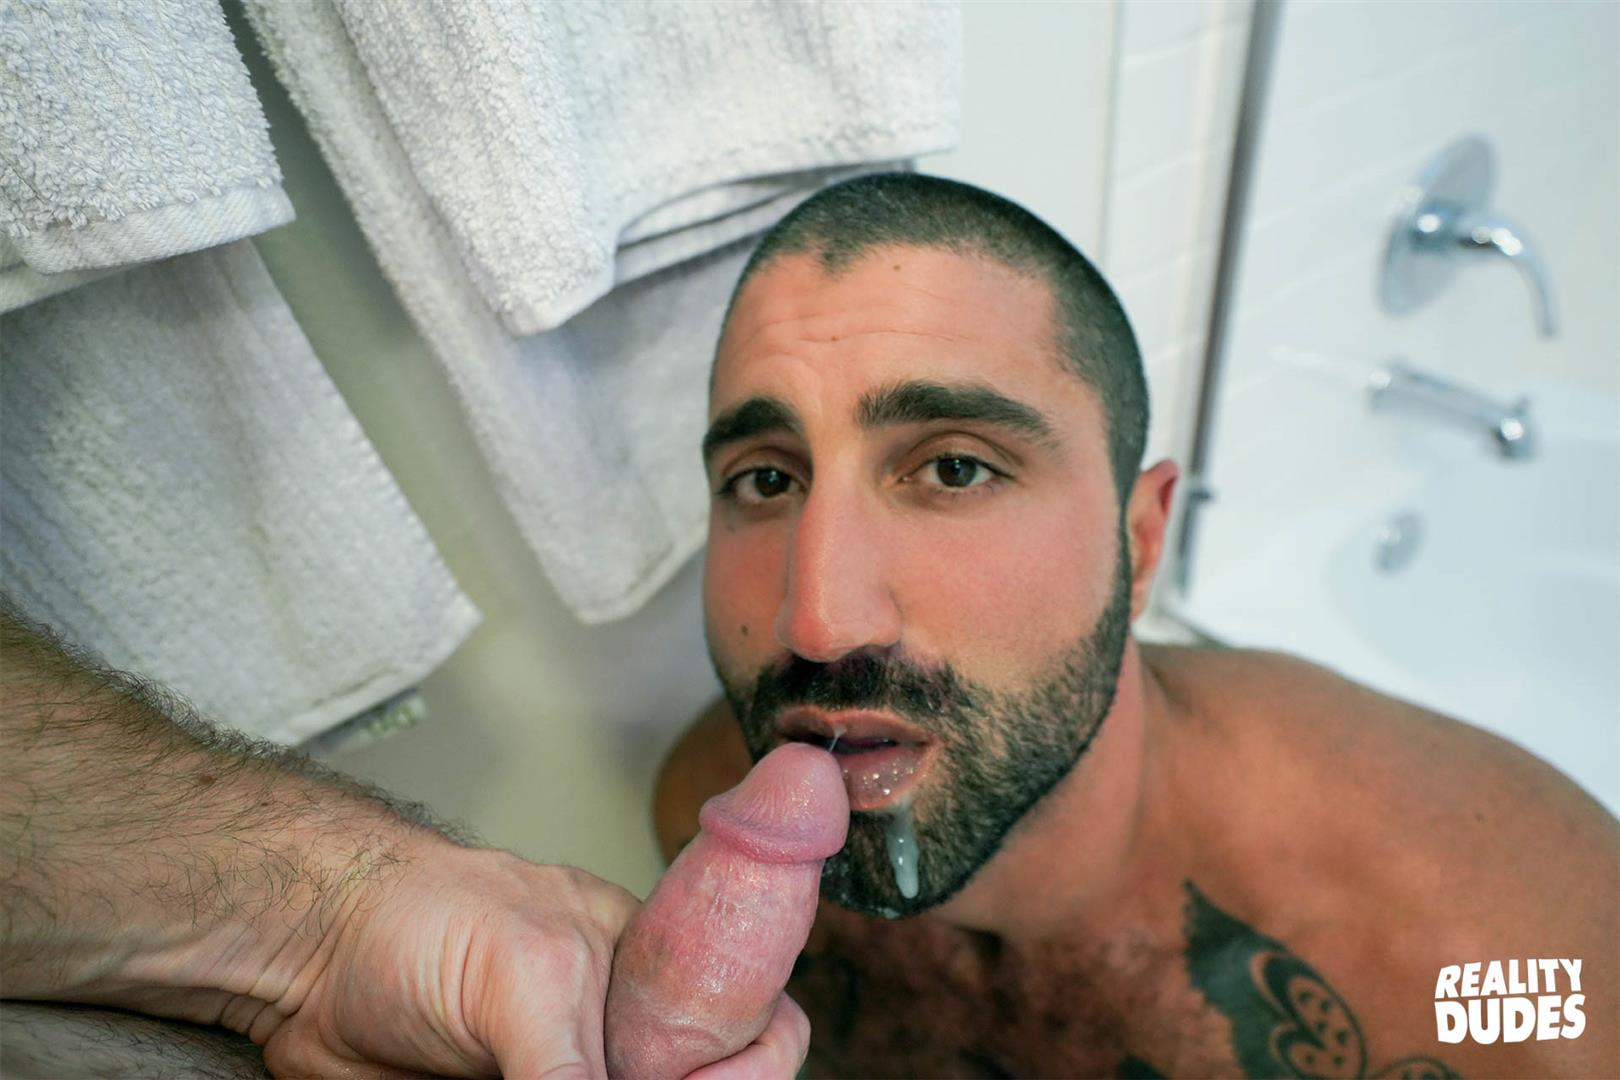 Reality-Dudes-Sharok-Straight-Guy-Gets-Fucked-In-Hairy-Ass-For-Cash-23 Paying A Straight Muscle Hunk To Let Me Fuck His Hairy Ass